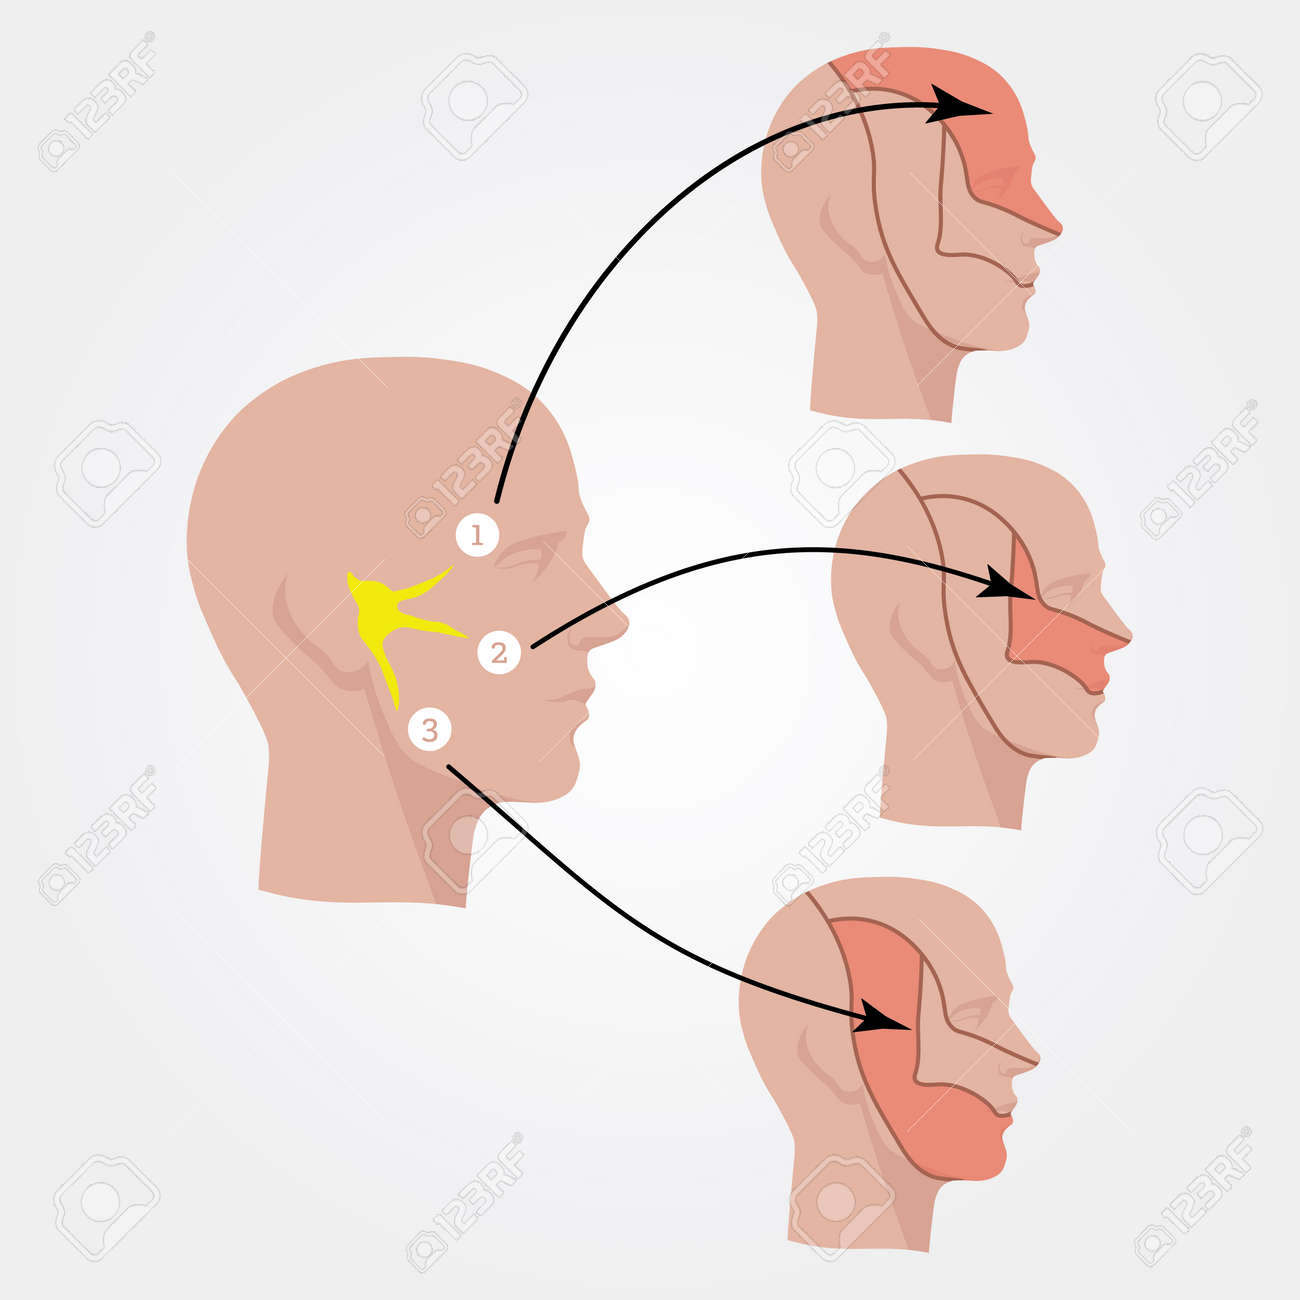 trigeminal nerve diagram car electrical wiring diagrams the human head flat illustration royalty free stock vector 57433529